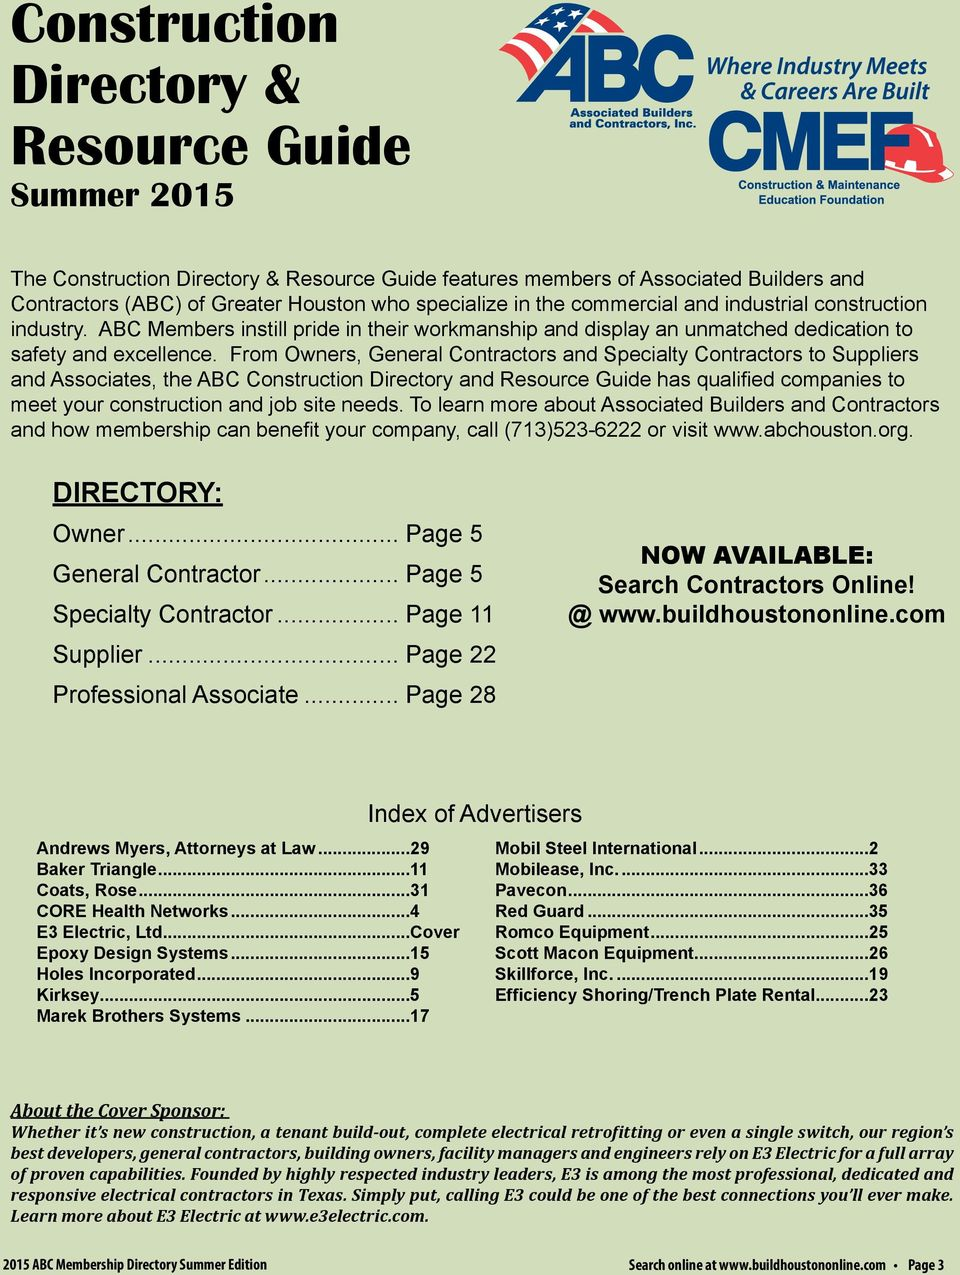 CONSTRUCTION DIRECTORY & RESOURCE GUIDE - PDF